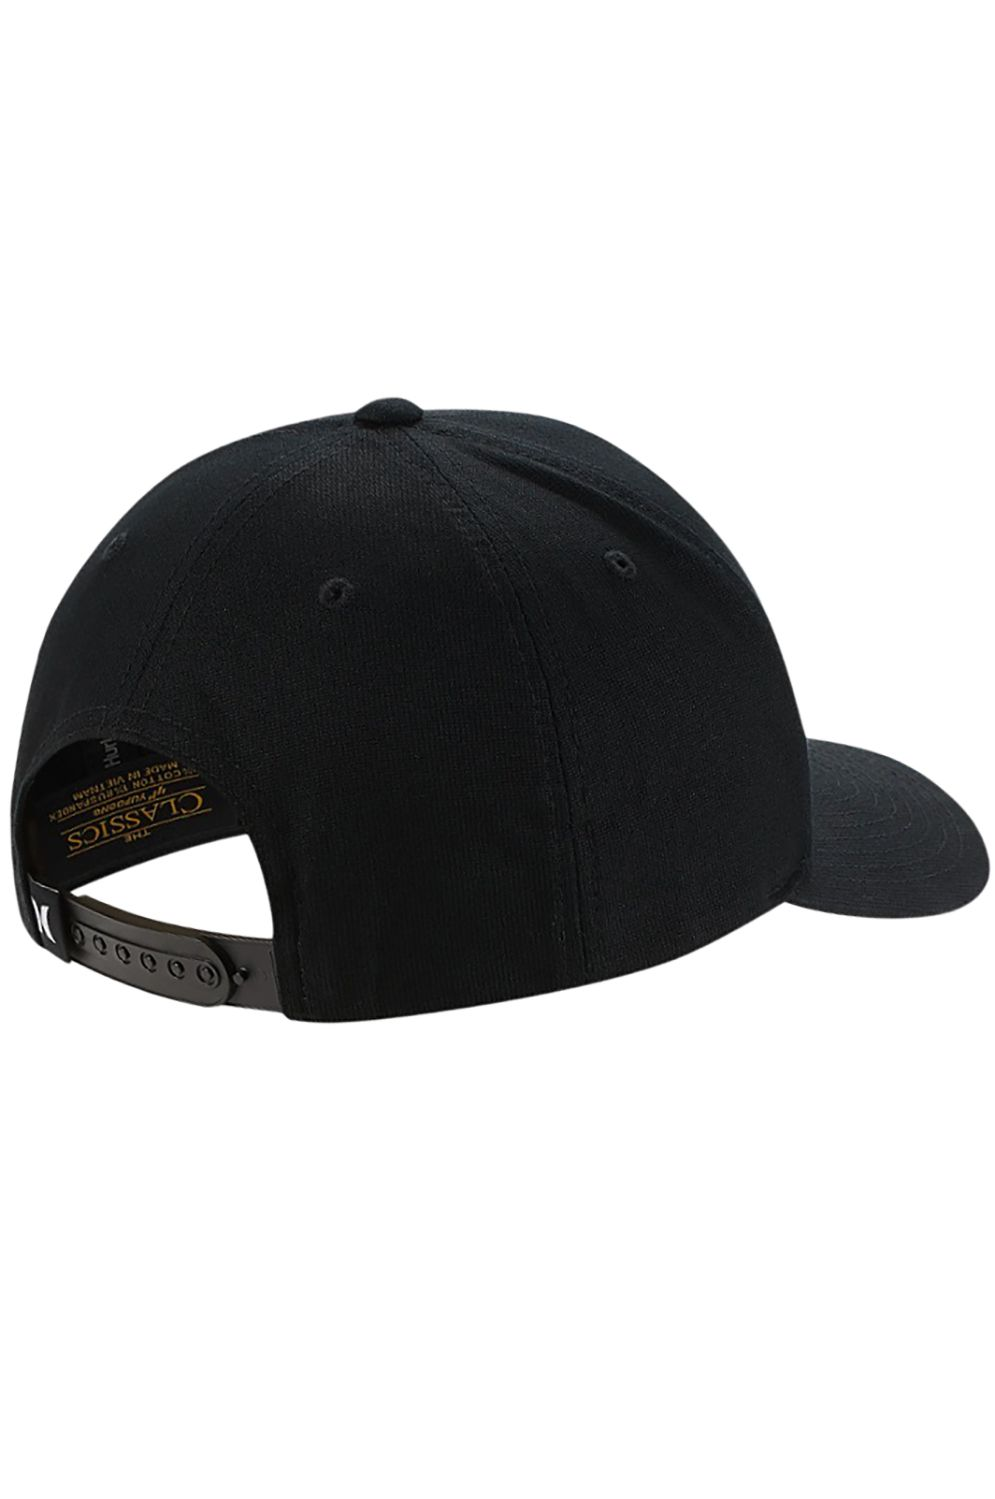 Bone Hurley STORM ICON CURVED Black